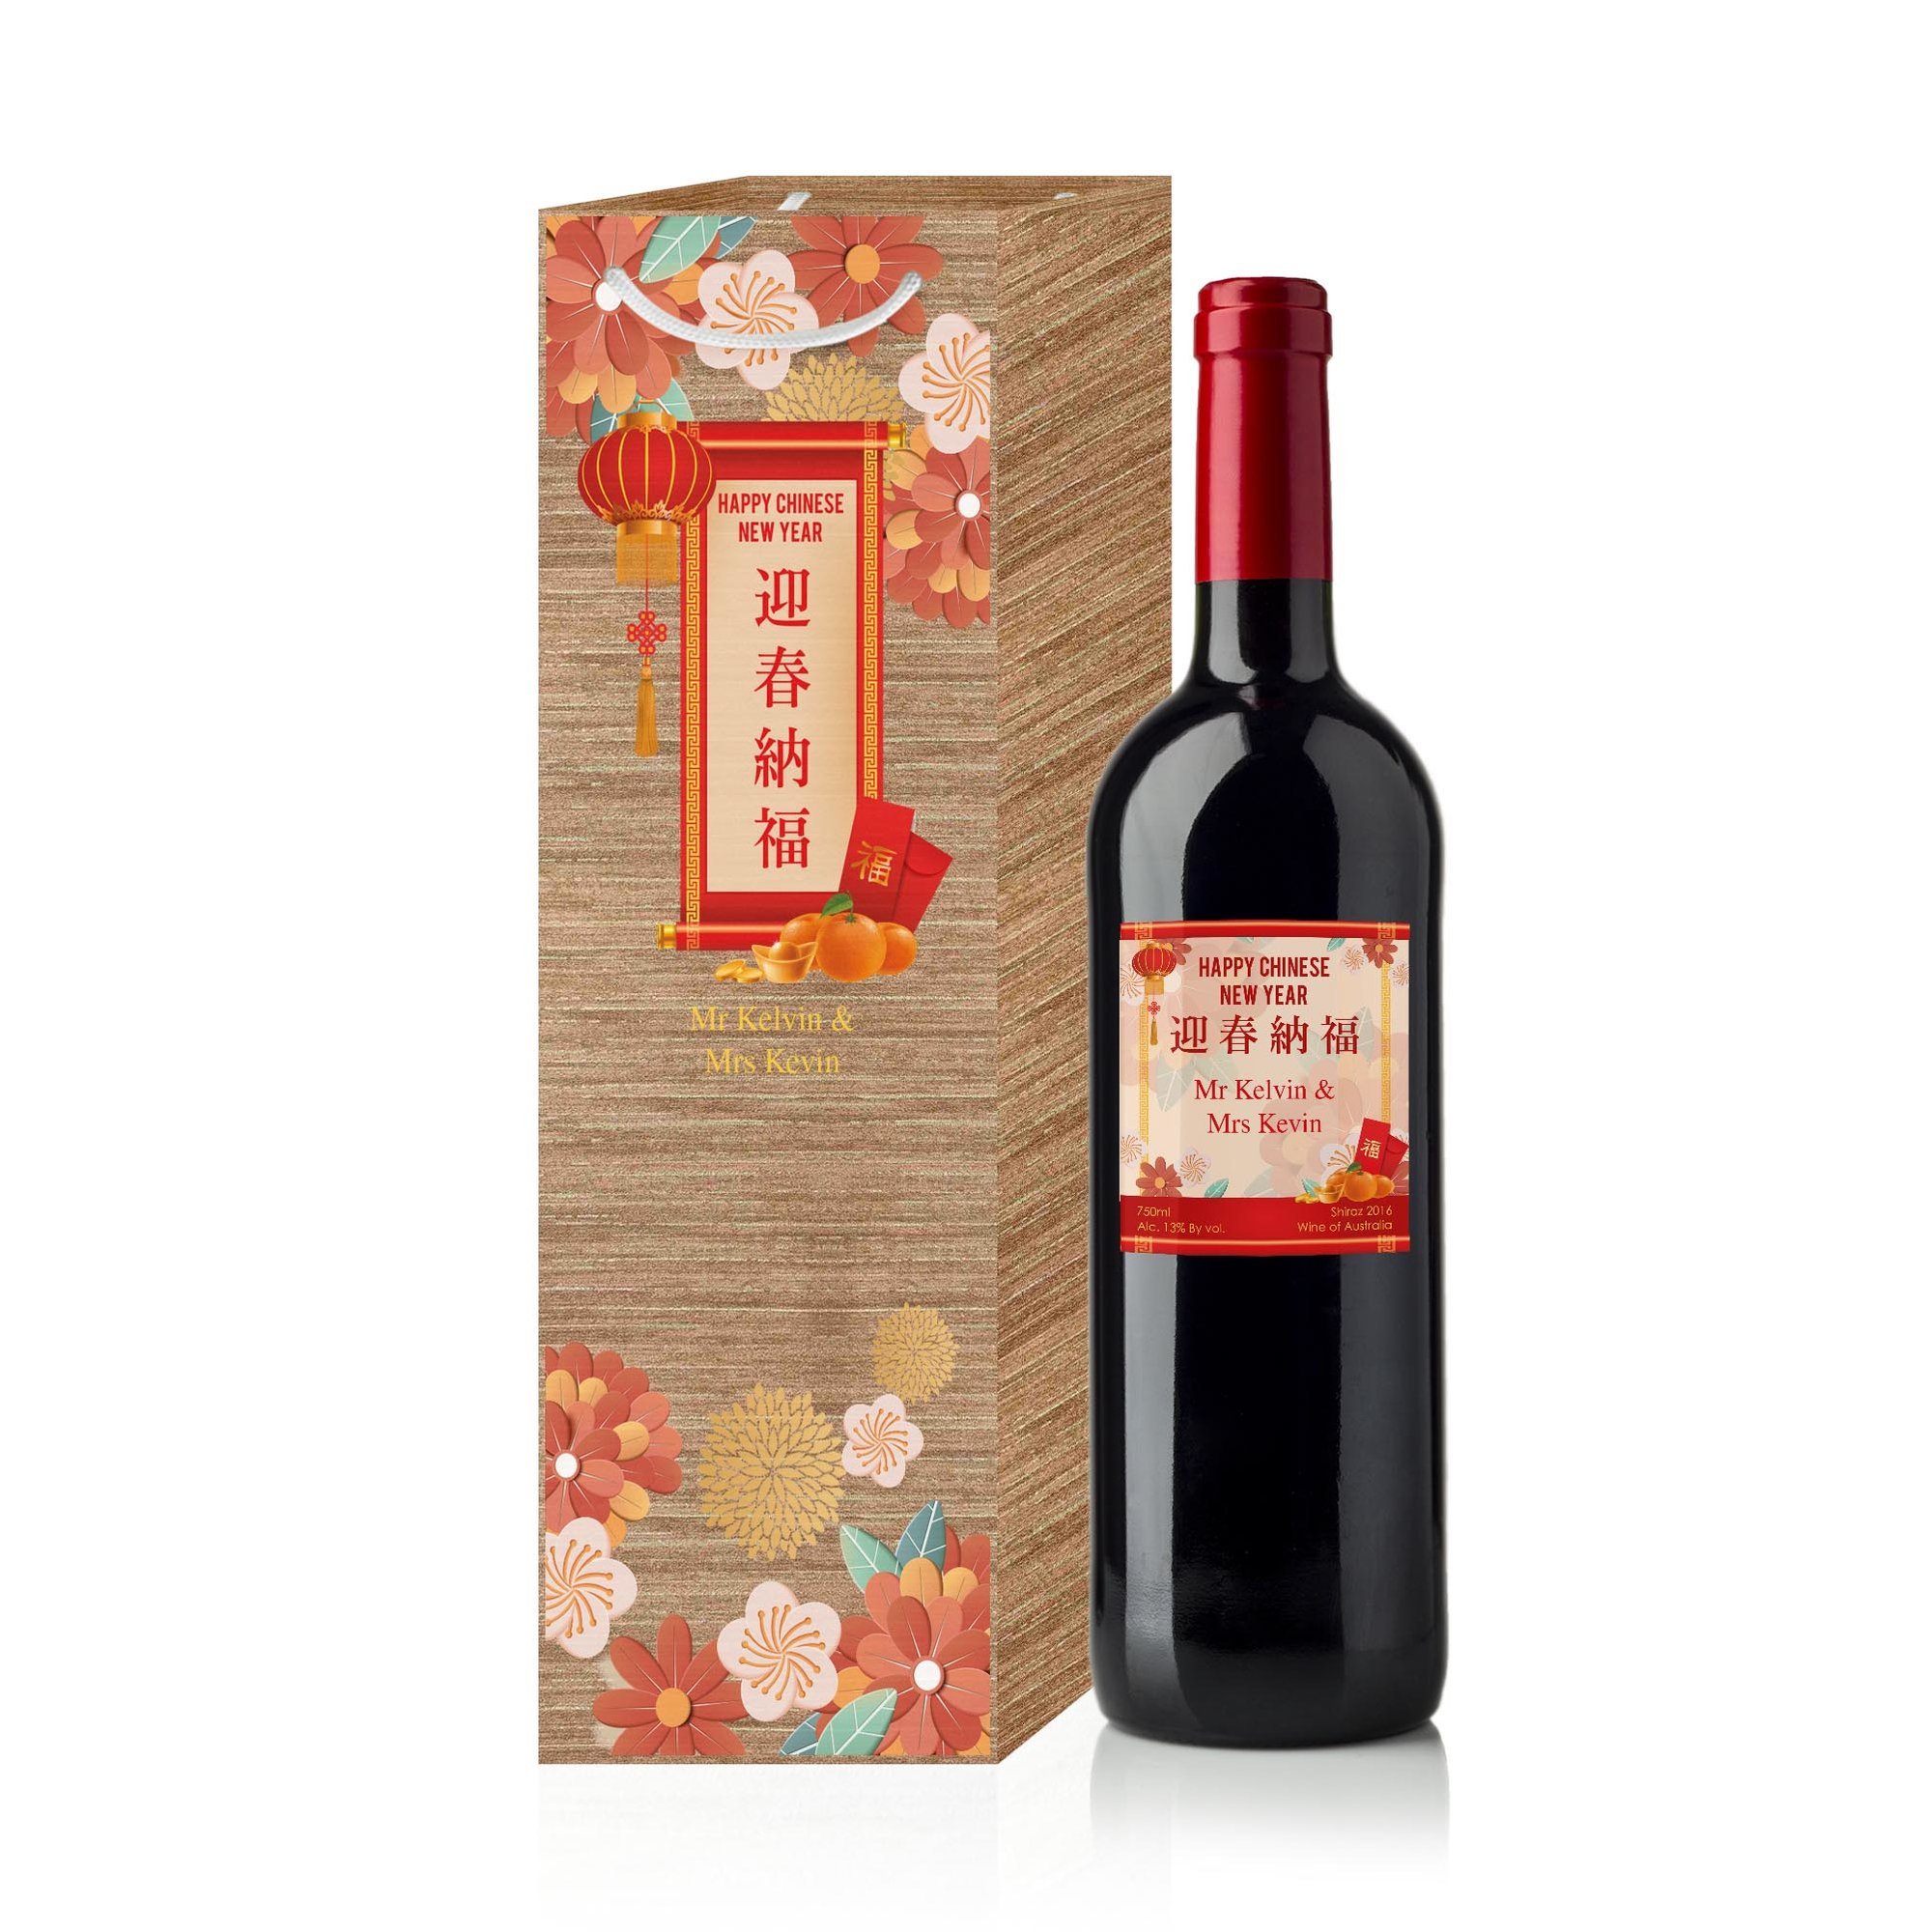 Chinese New Year Wine Memento